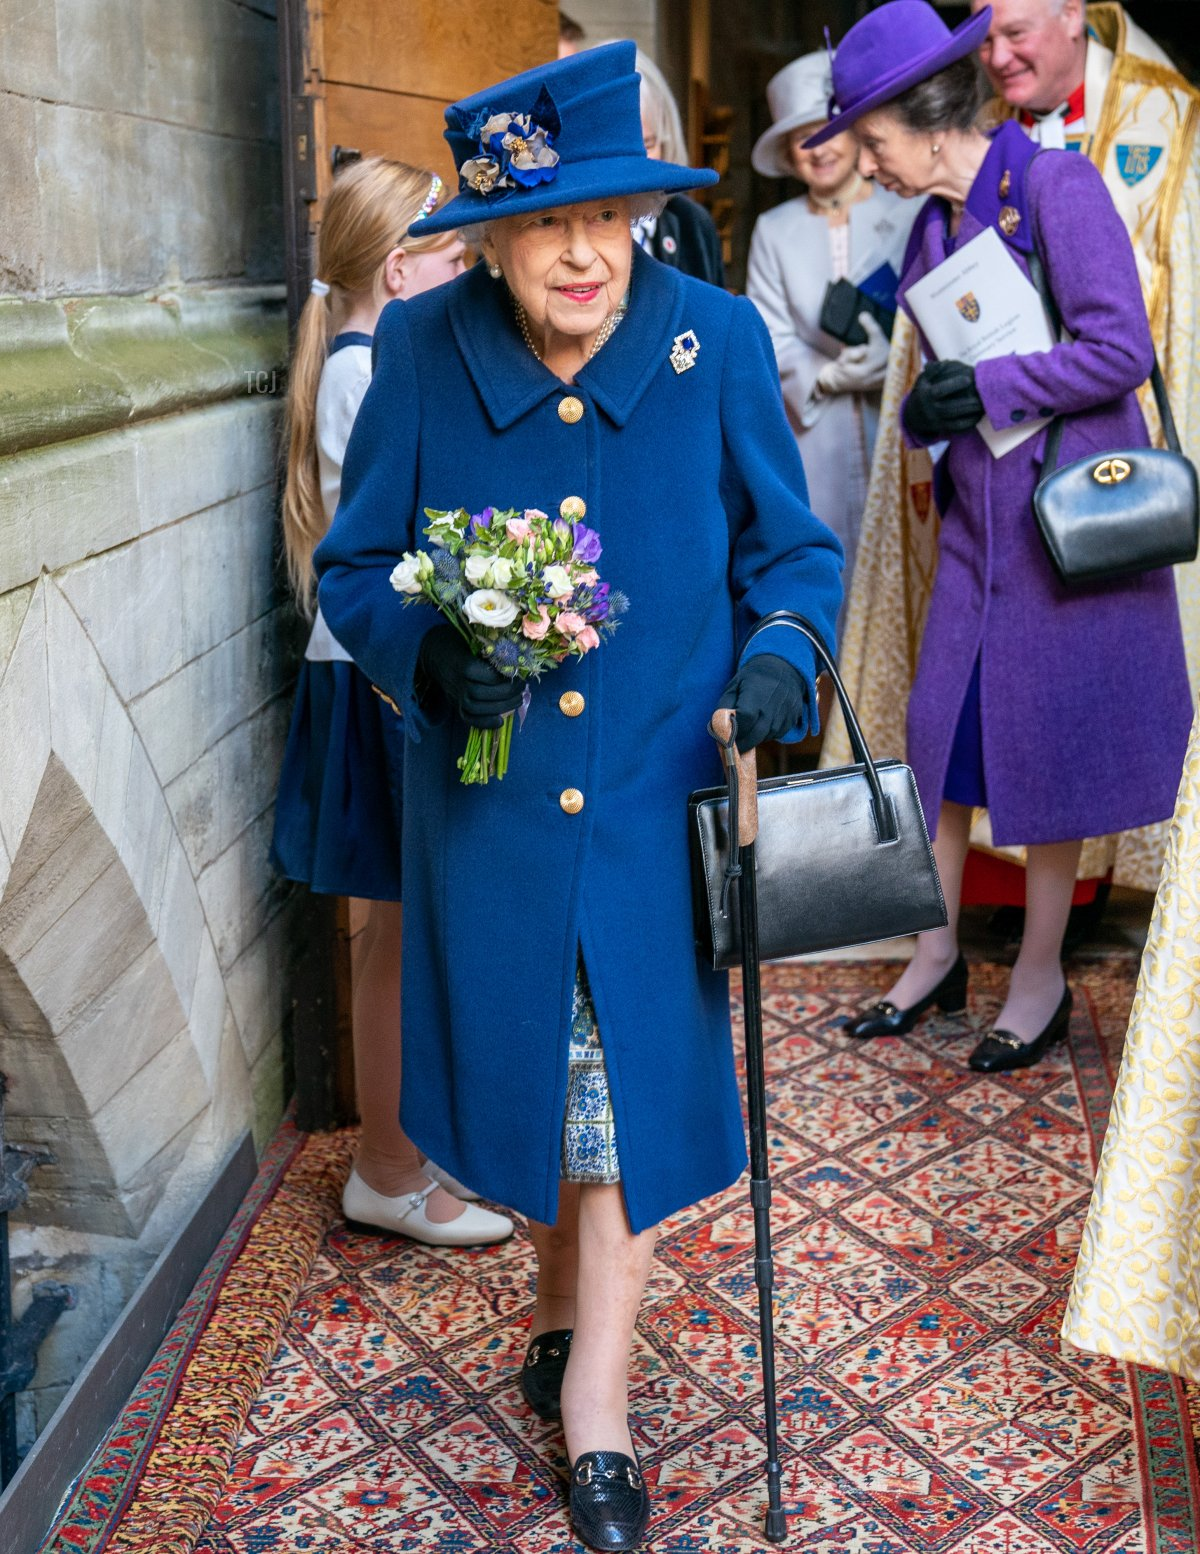 Queen Elizabeth II and Princess Anne, Princess Royal attend a service of Thanksgiving to mark the centenary of The Royal British Legion at Westminster Abbey on October 12, 2021 in London, England